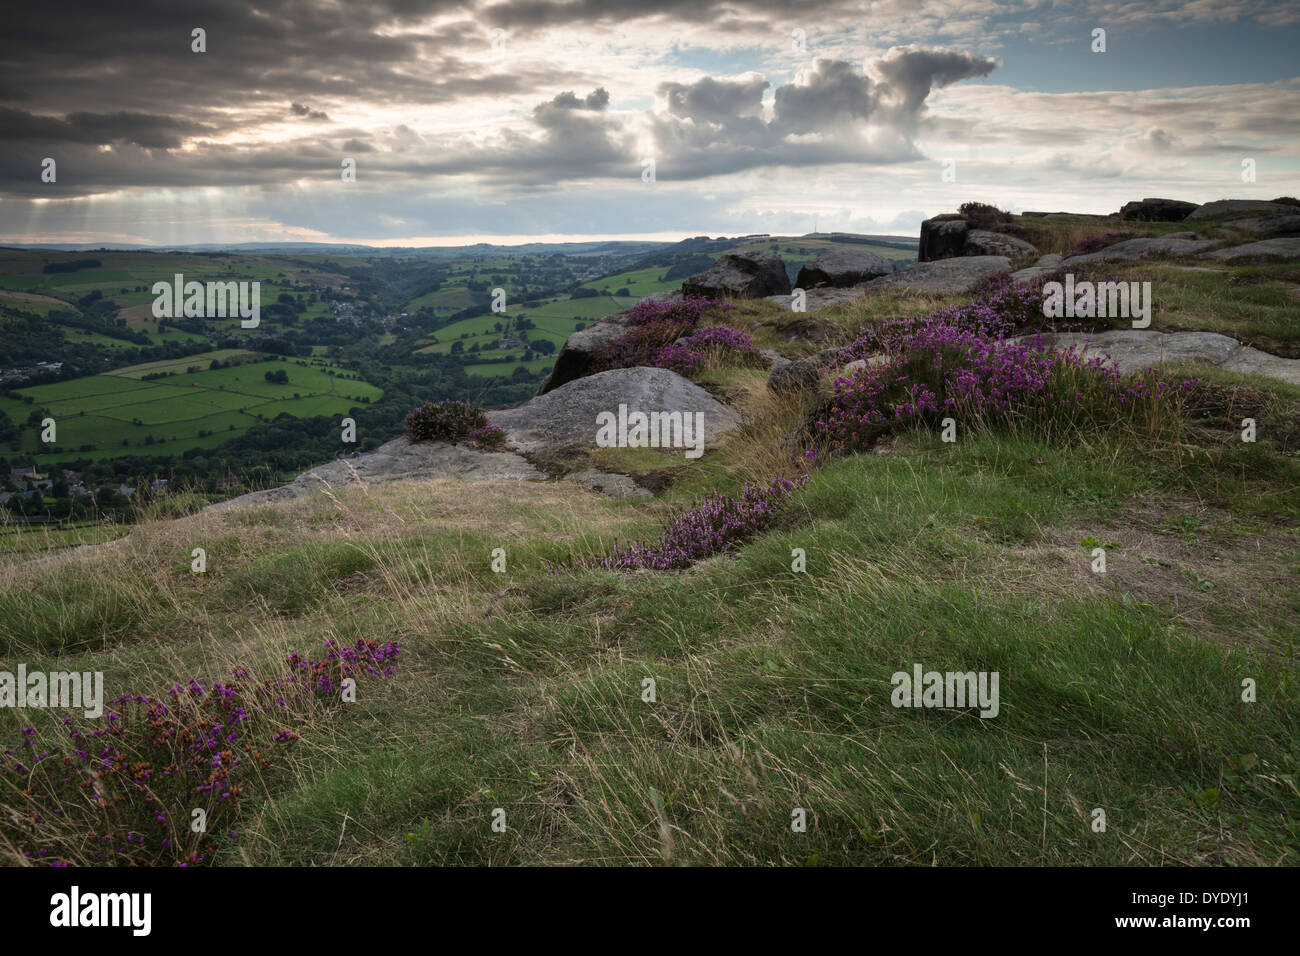 Stormy skies over the Derwent valley viewed from Curbar Edge beside flowering heather, Peak District National Park, Derbyshire, England - Stock Image